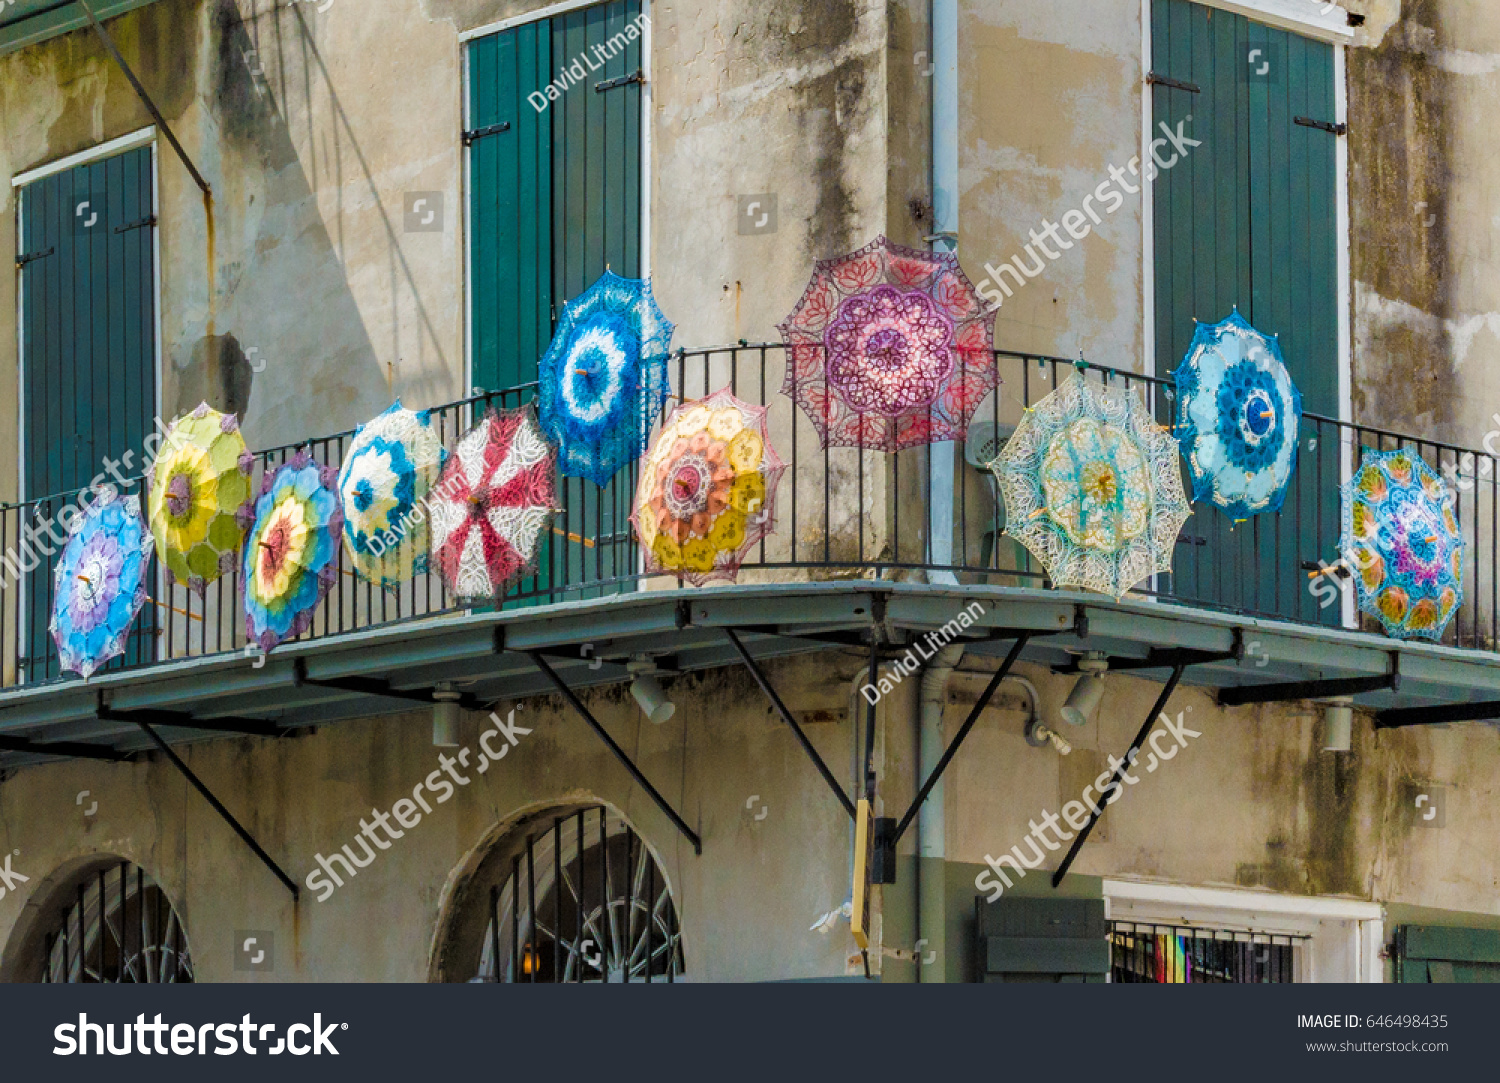 Colorful umbrellas decorate a balcony in the French Quarter of New Orleans, Louisiana.